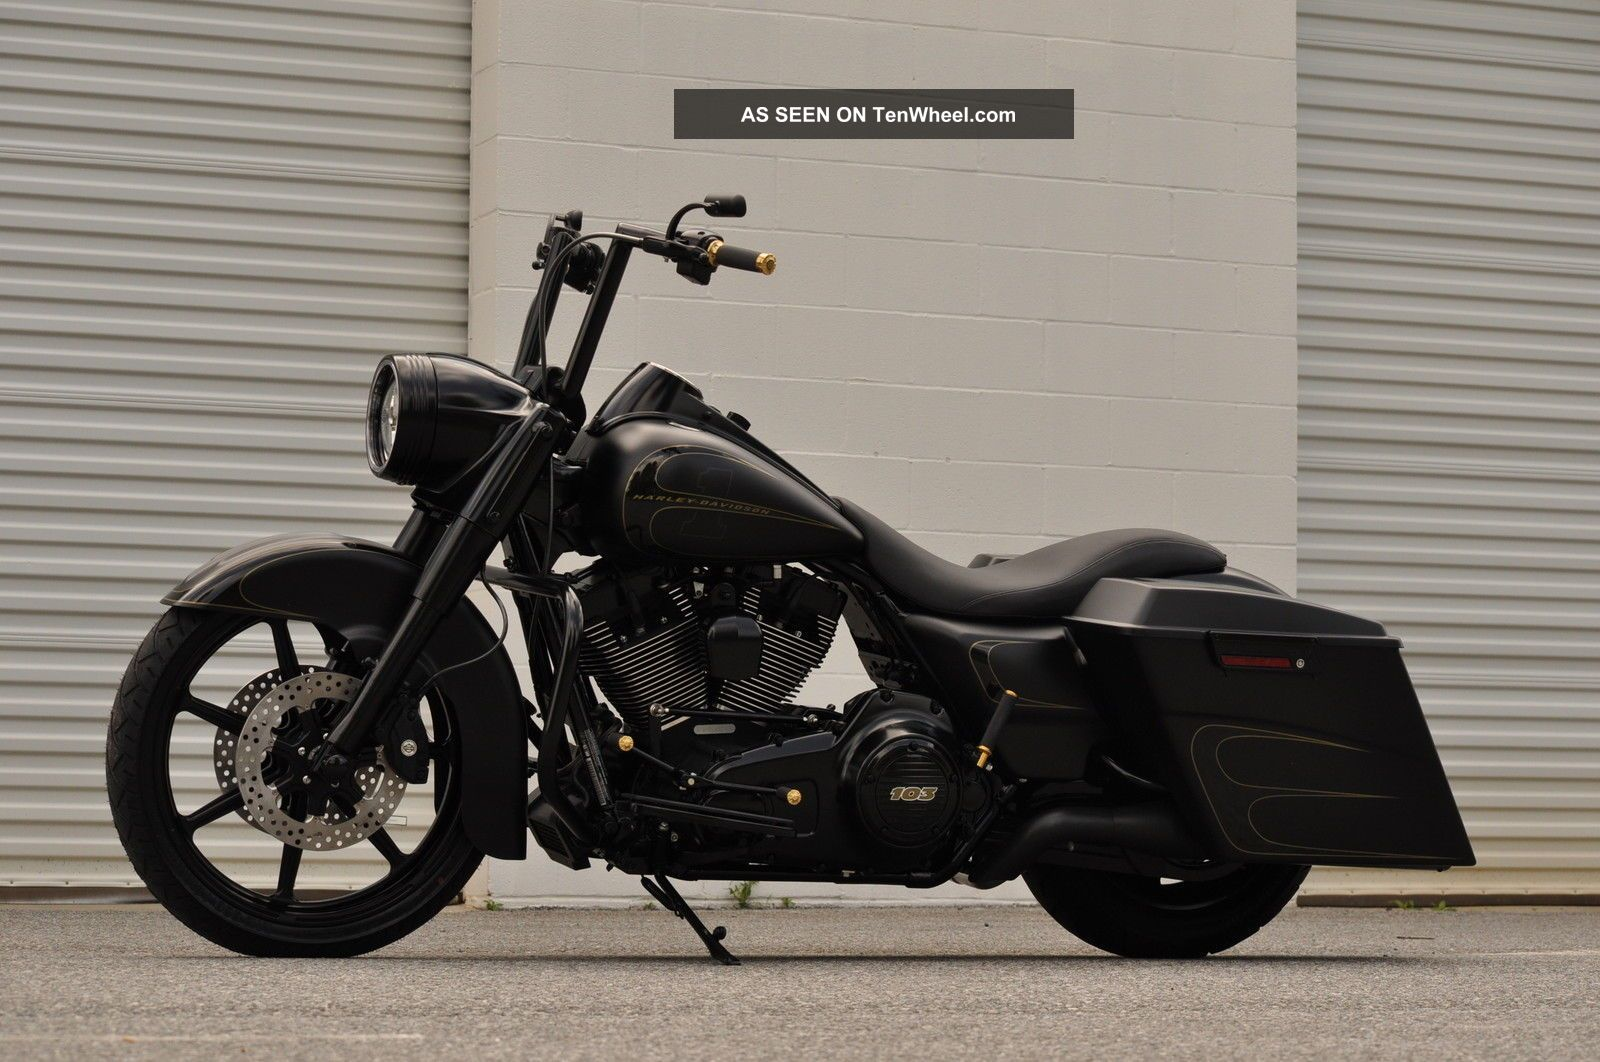 2013 Road King Custom 1 Of A Kind 15k In Xtra S Black